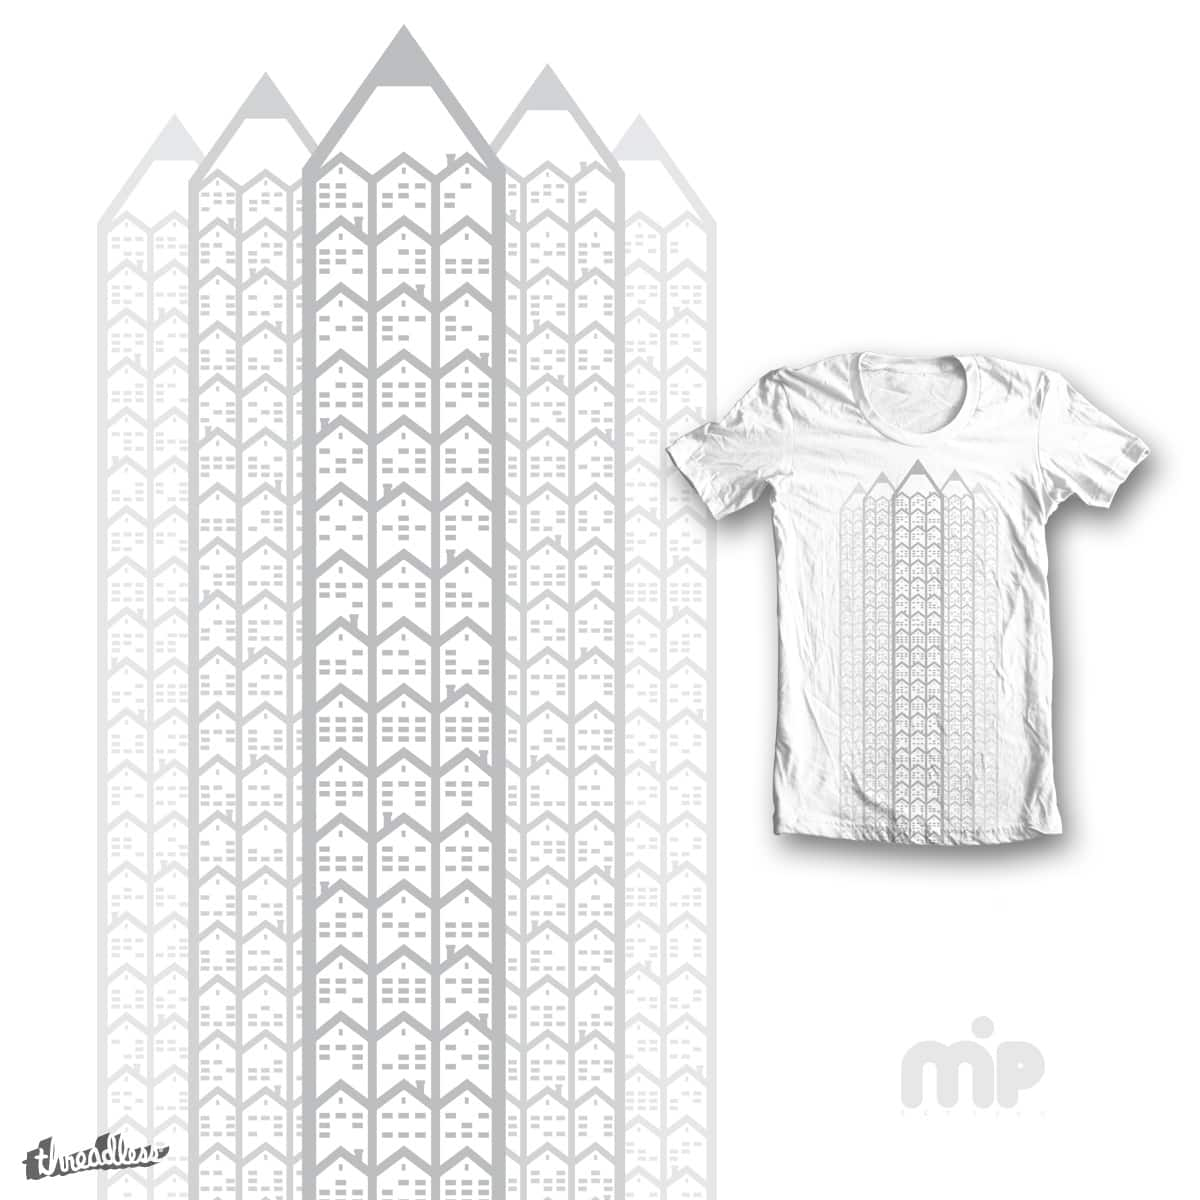 2B Under The Mountains by mip1980 on Threadless